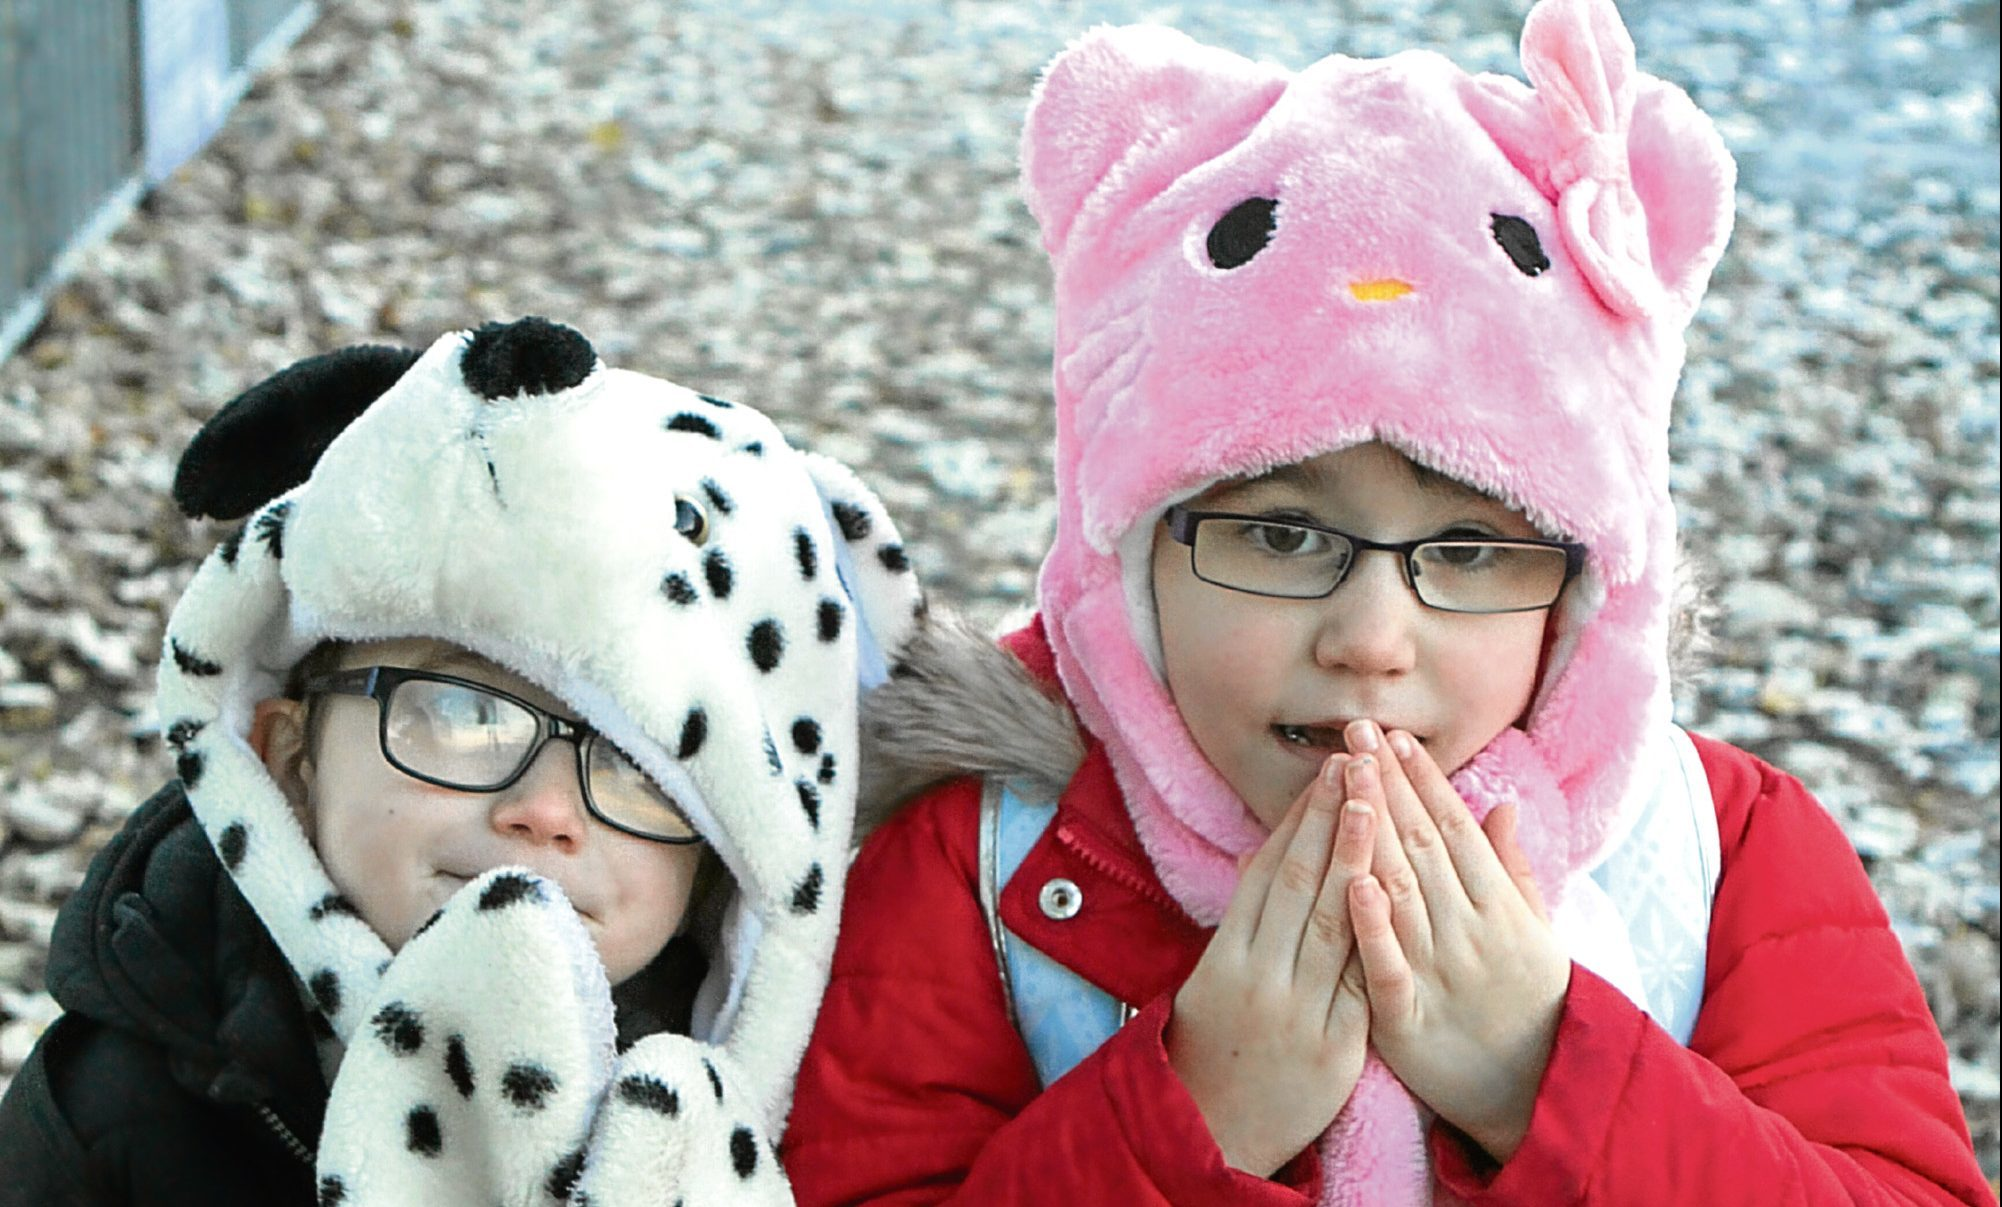 Andrew Haggart, 5, and sister Emma, 6, on their way to Hillside Primary School. The pair had to wrap up warm to beat the freezing conditions.